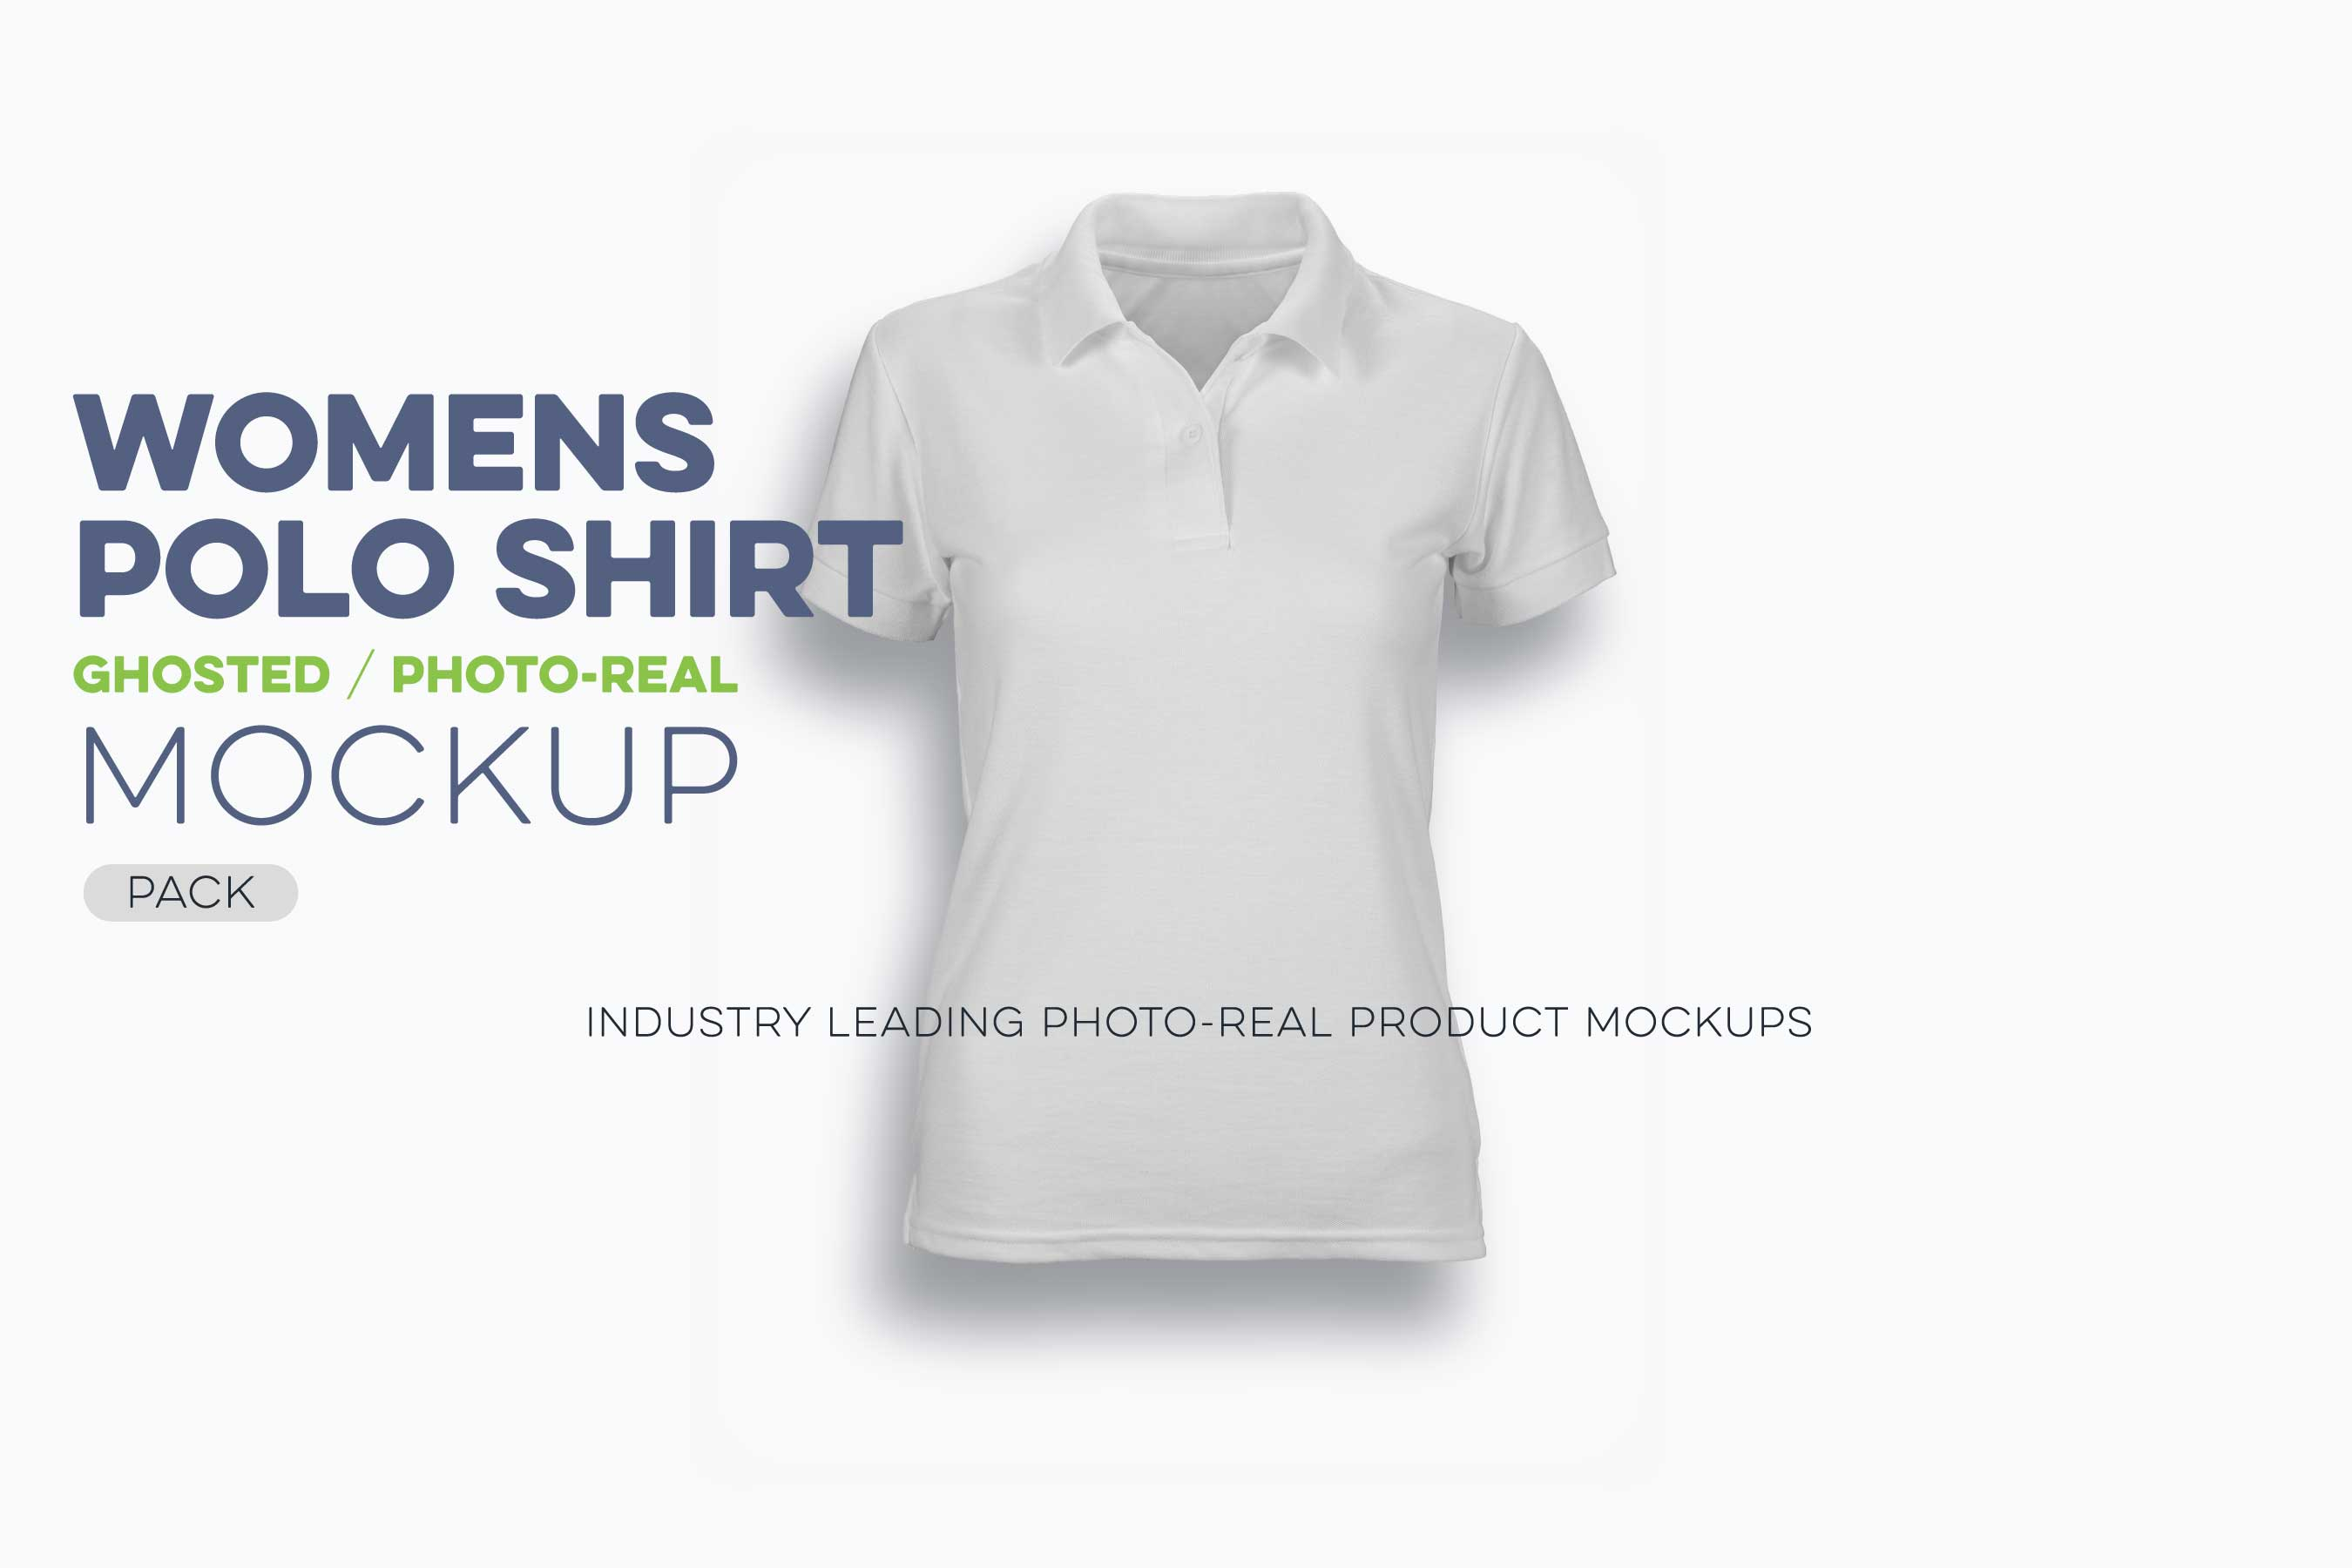 womens ghosted polo shirt mockup template N